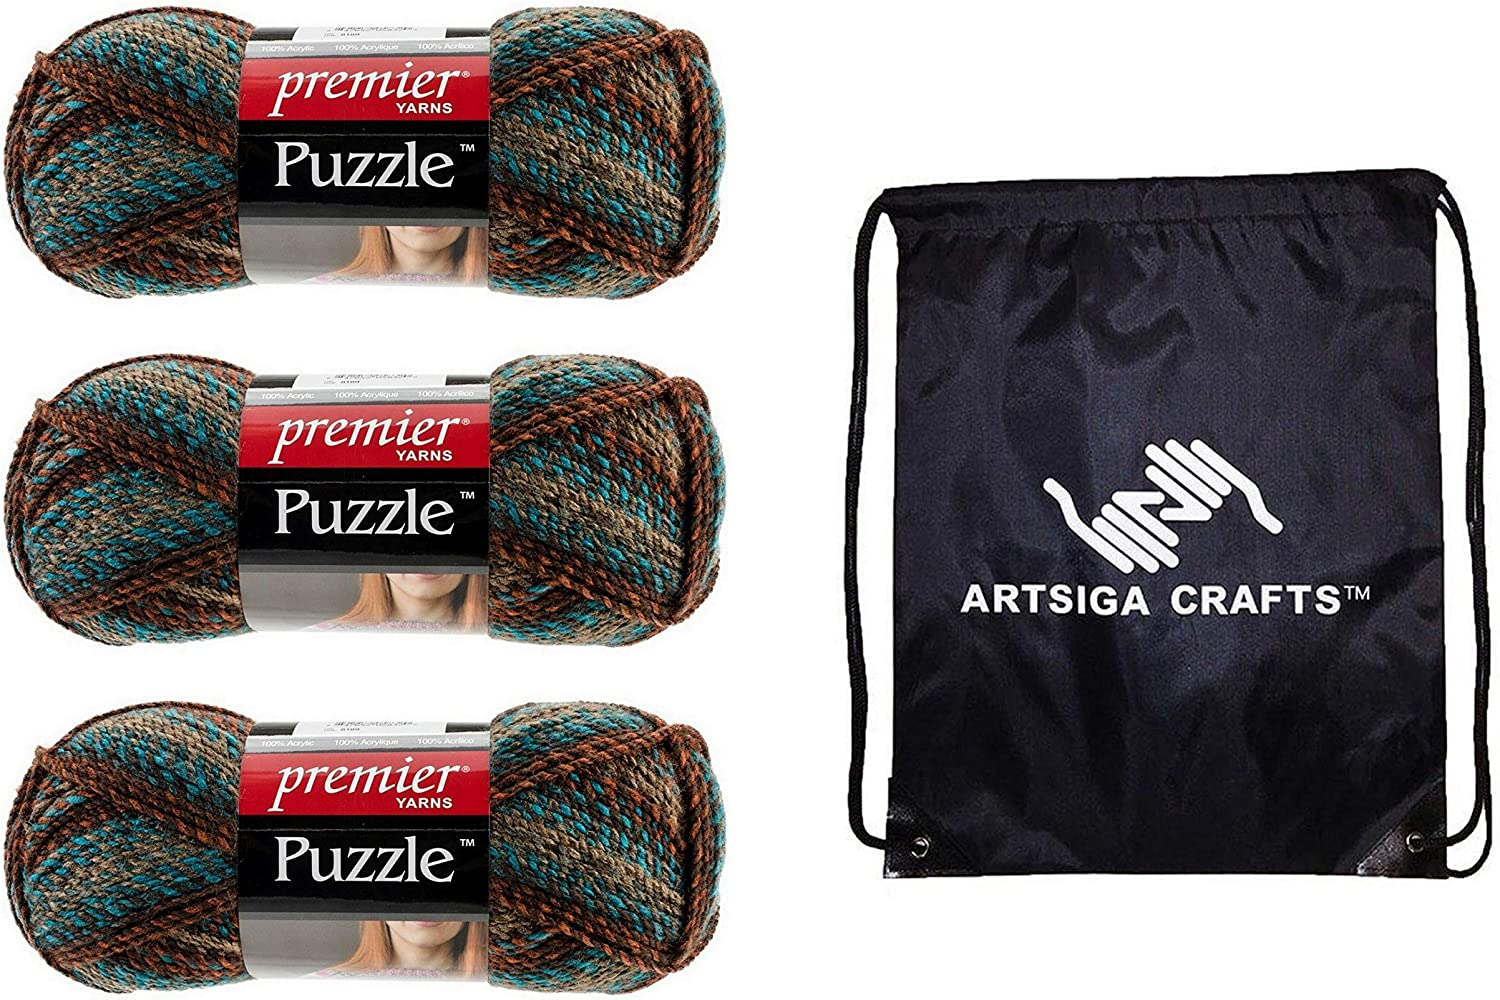 Max 55% OFF Premier Yarns Puzzle Anagram Daily bargain sale 1050-04 Colors Alternating U for 4